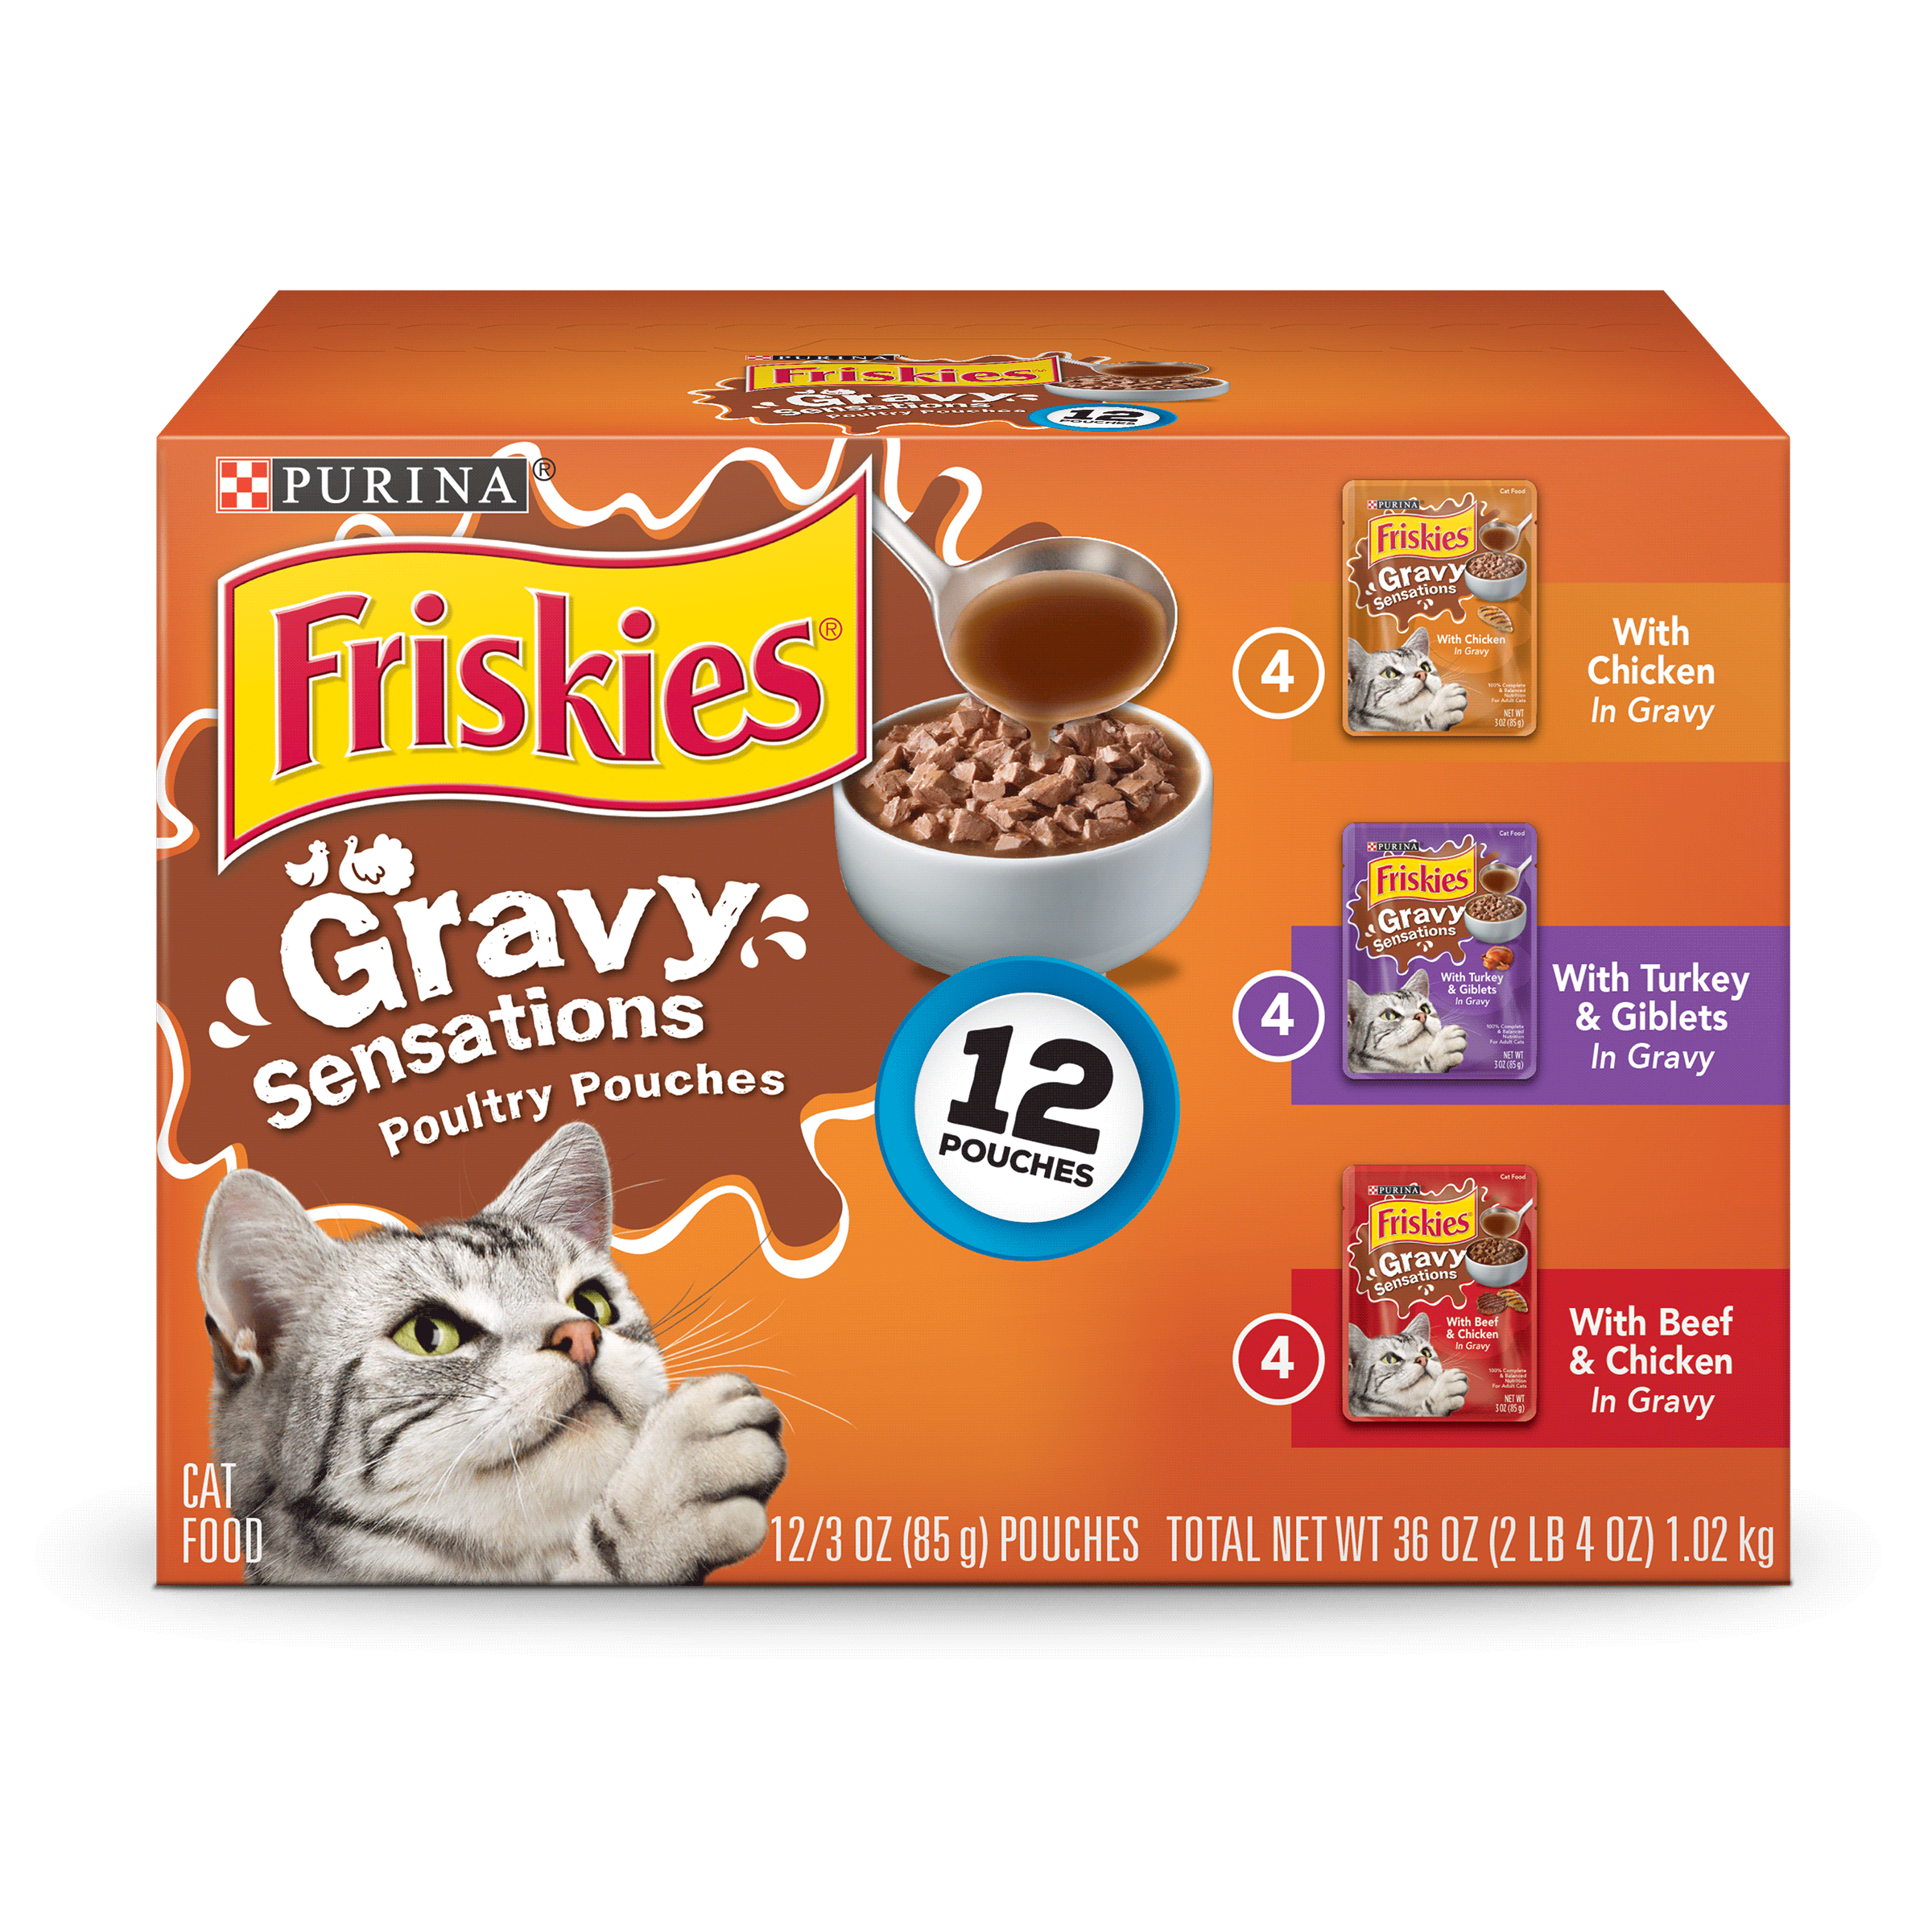 Purina Friskies Gravy Sensations Poultry Favorites Adult Wet Cat Food Variety Pack - (12) 3 oz. Pouches